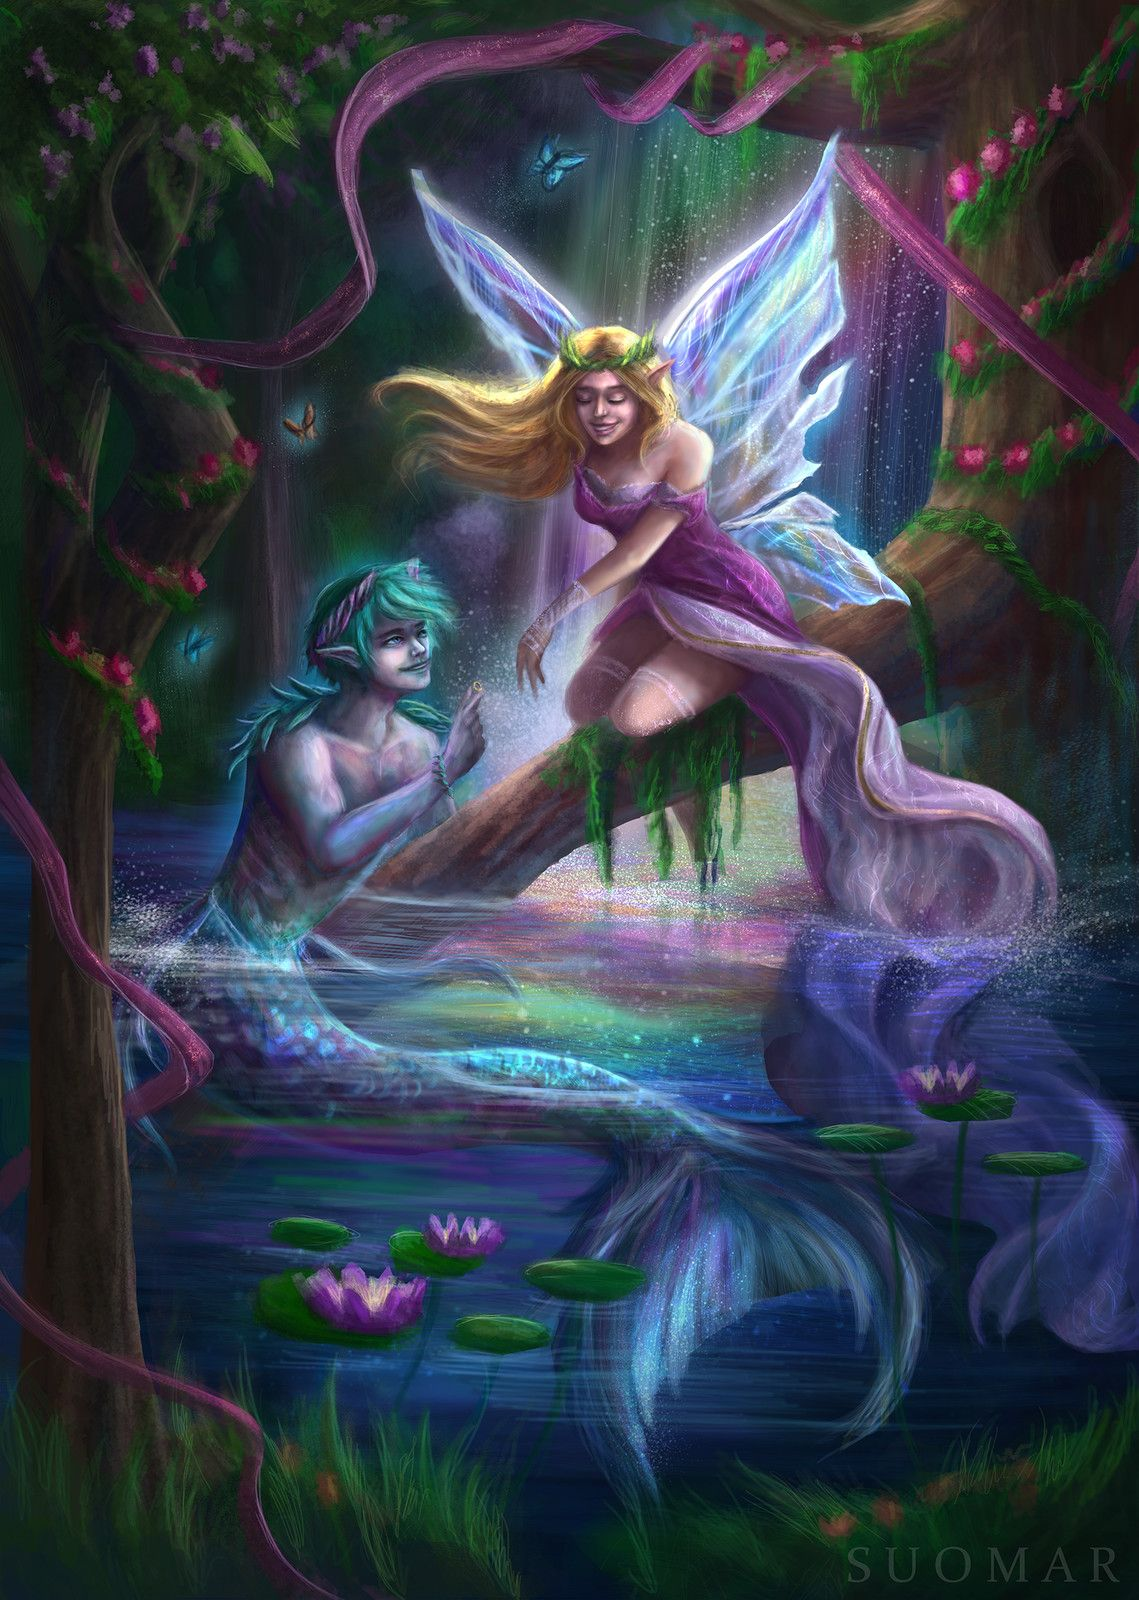 The Sweetest Dreams Come True Suo Mar On Artstation At Https Www Artstation Com Artwork Onvoj Fantasy Mermaids Mermaid Art Mermaid Painting